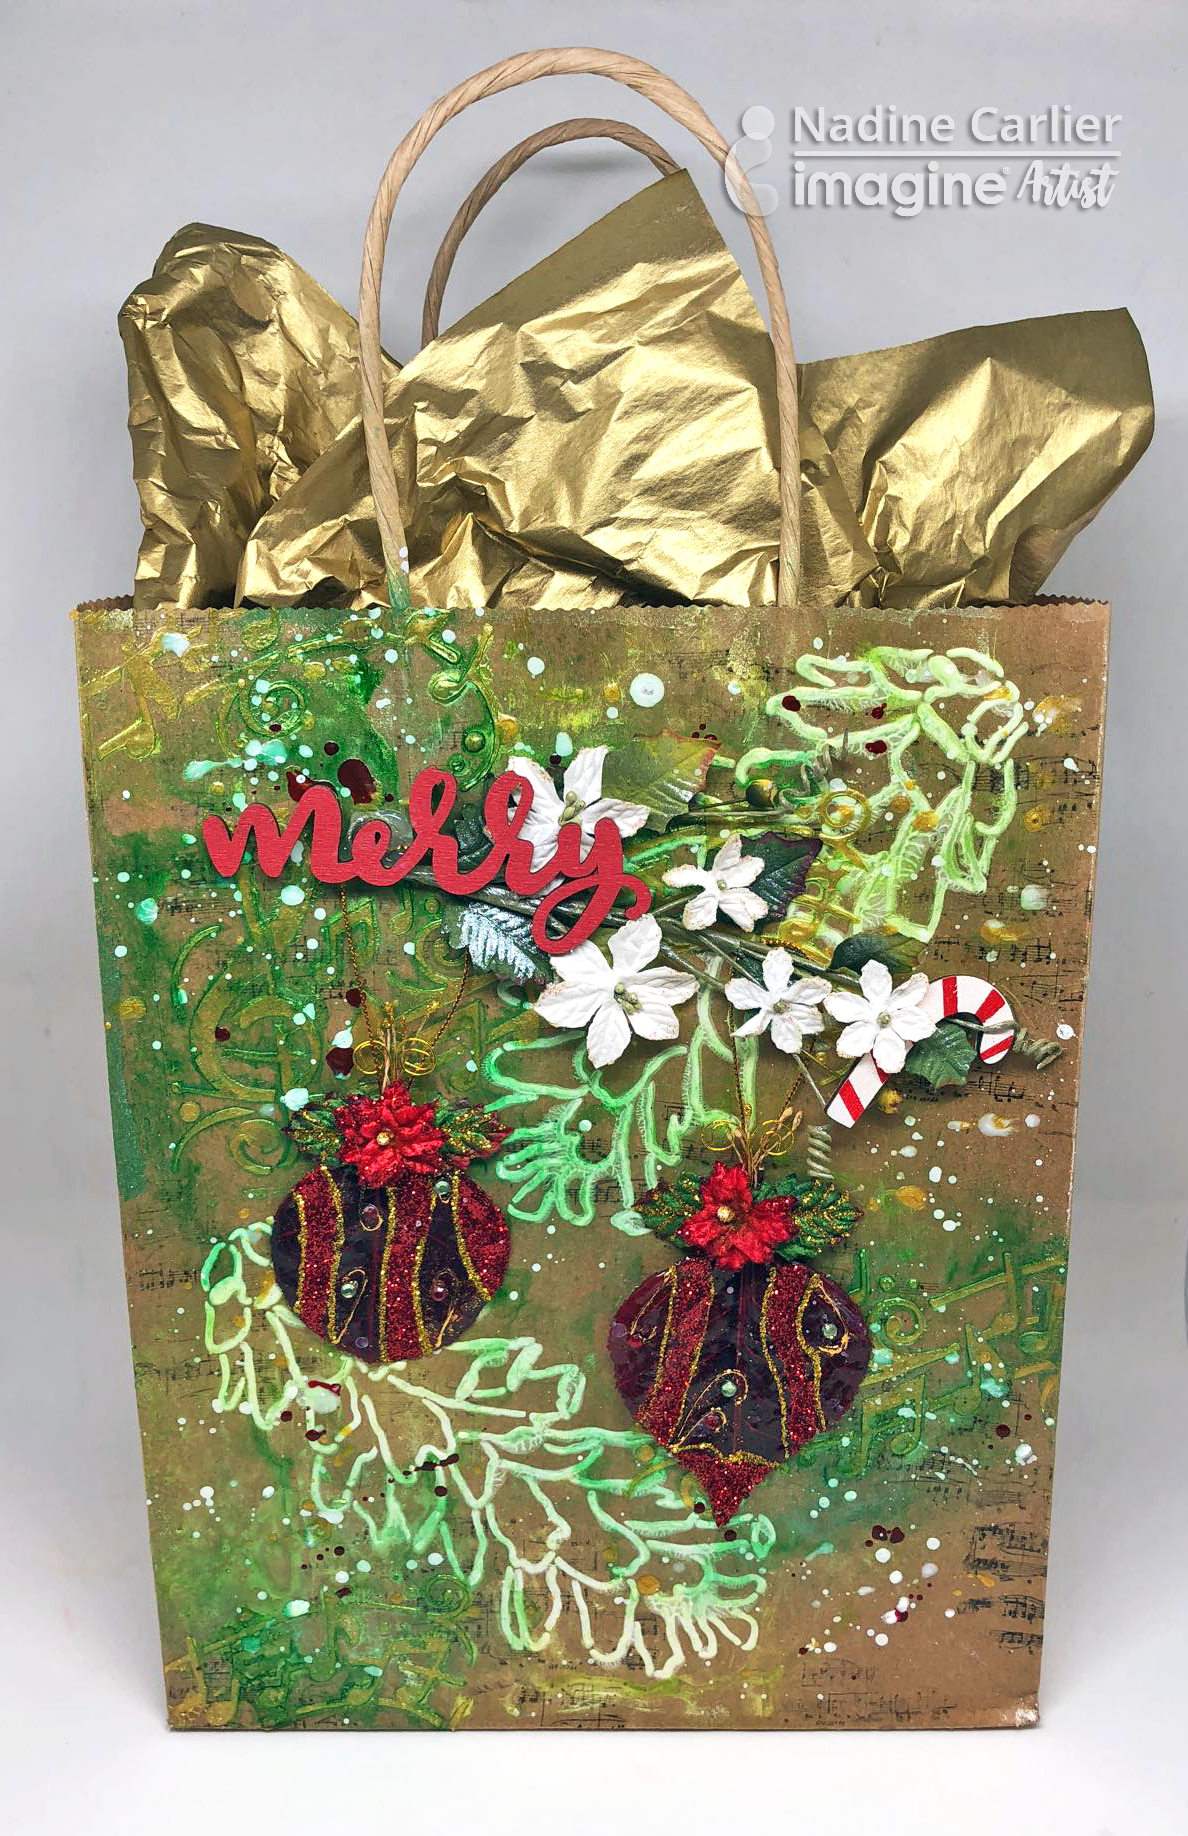 Mixed Media Gift Bag by Nadine Carlier ic